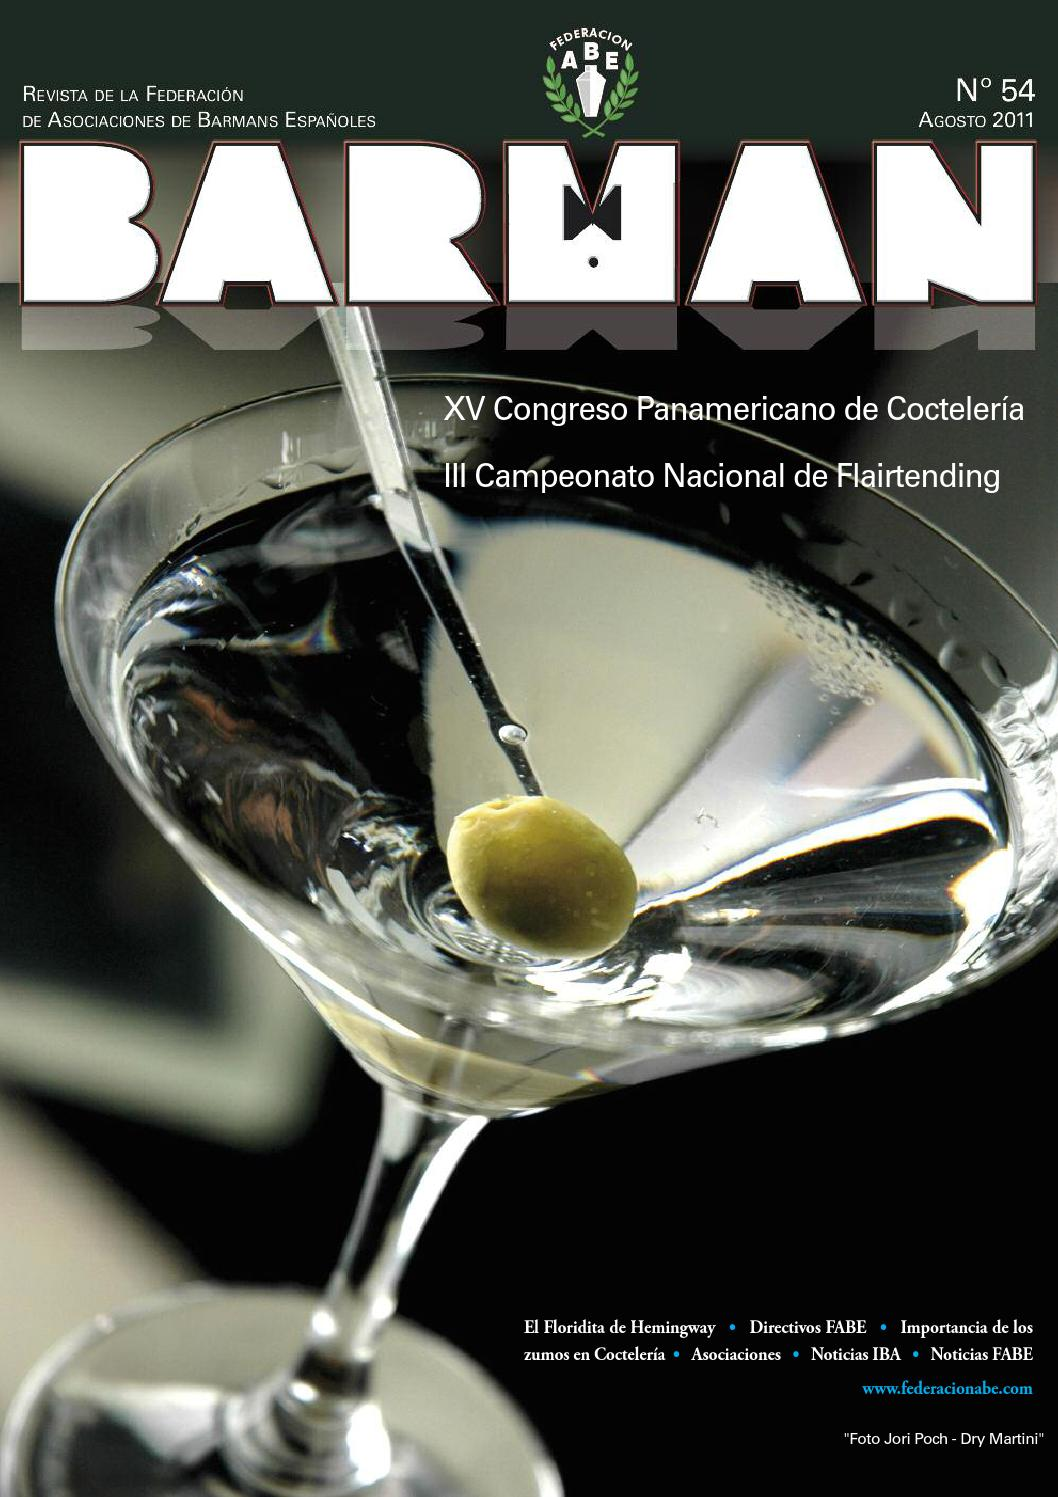 Revista barman 54 by ABE VALENCIA - issuu